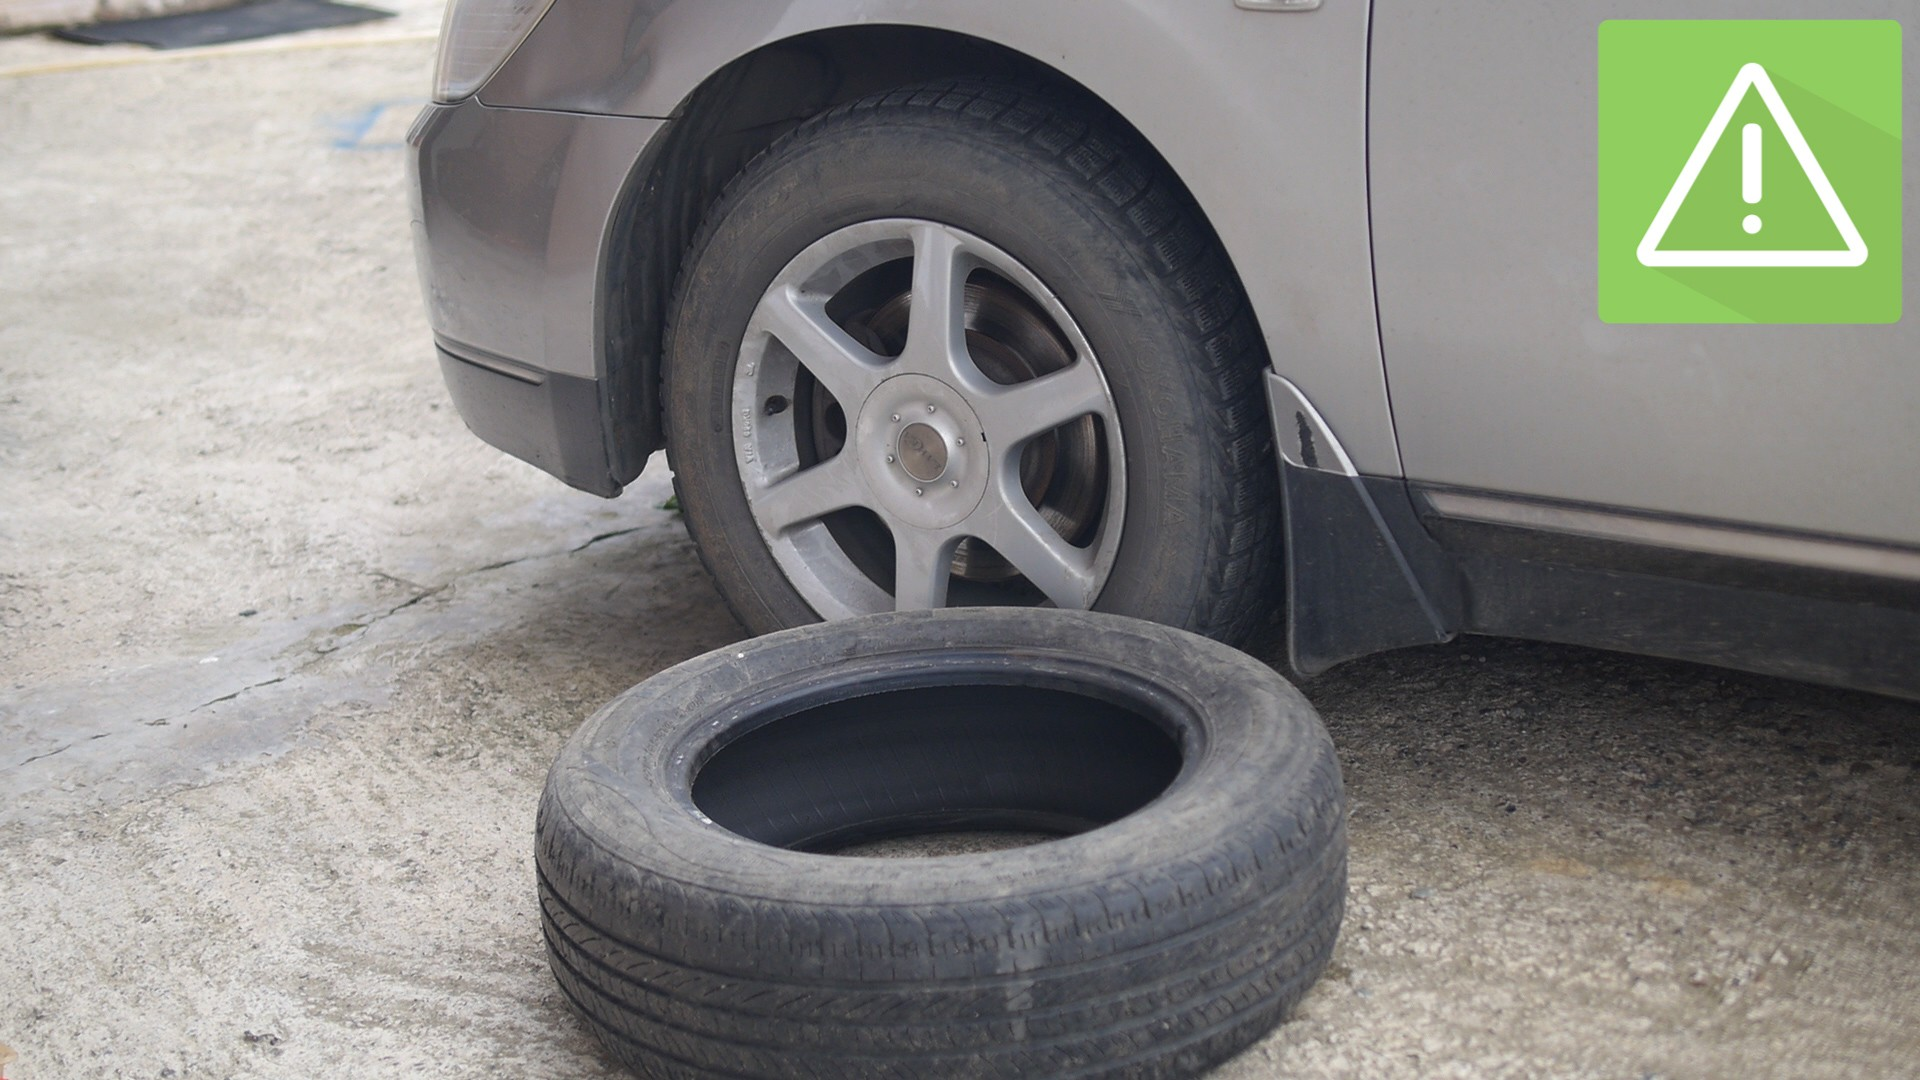 Car Tire Rotation Diagram 2 Easy Ways to Fix A Flat Tire with Wikihow Of Car Tire Rotation Diagram